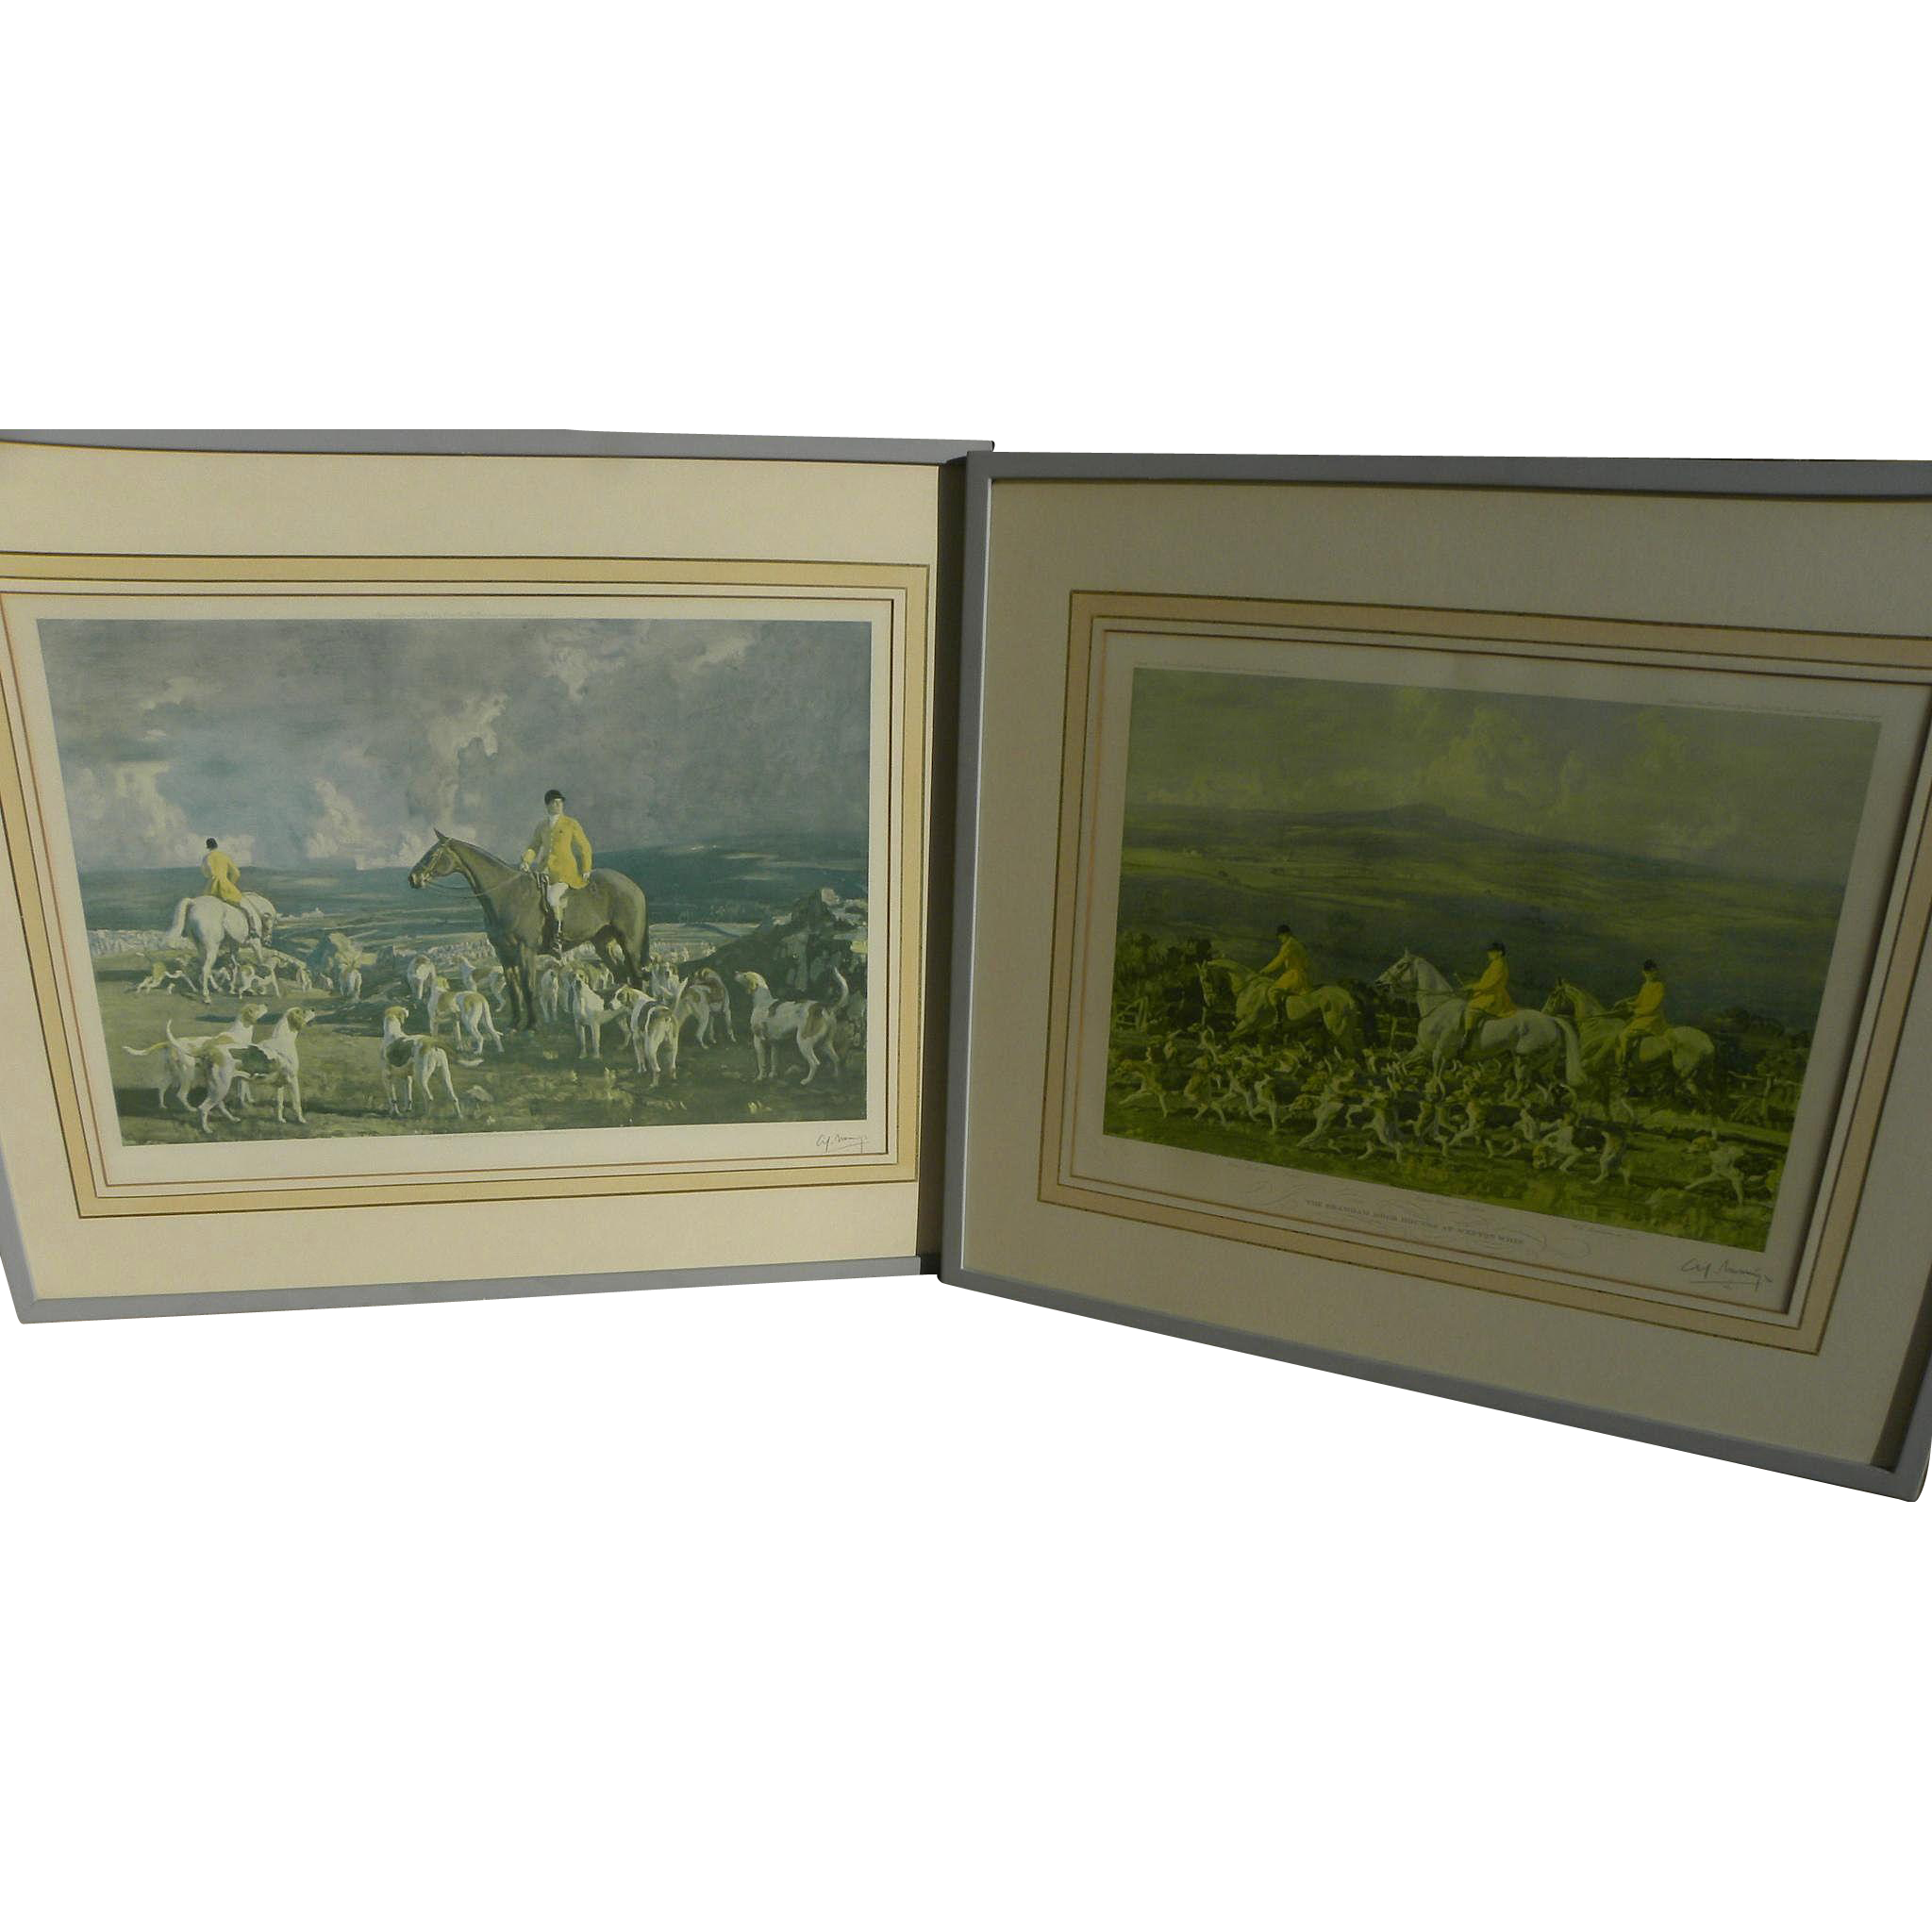 ALFRED MUNNINGS (1878-1959) pencil signed **PAIR** of lithographs of race horse and fox hunt by the acclaimed English sporting art master artist